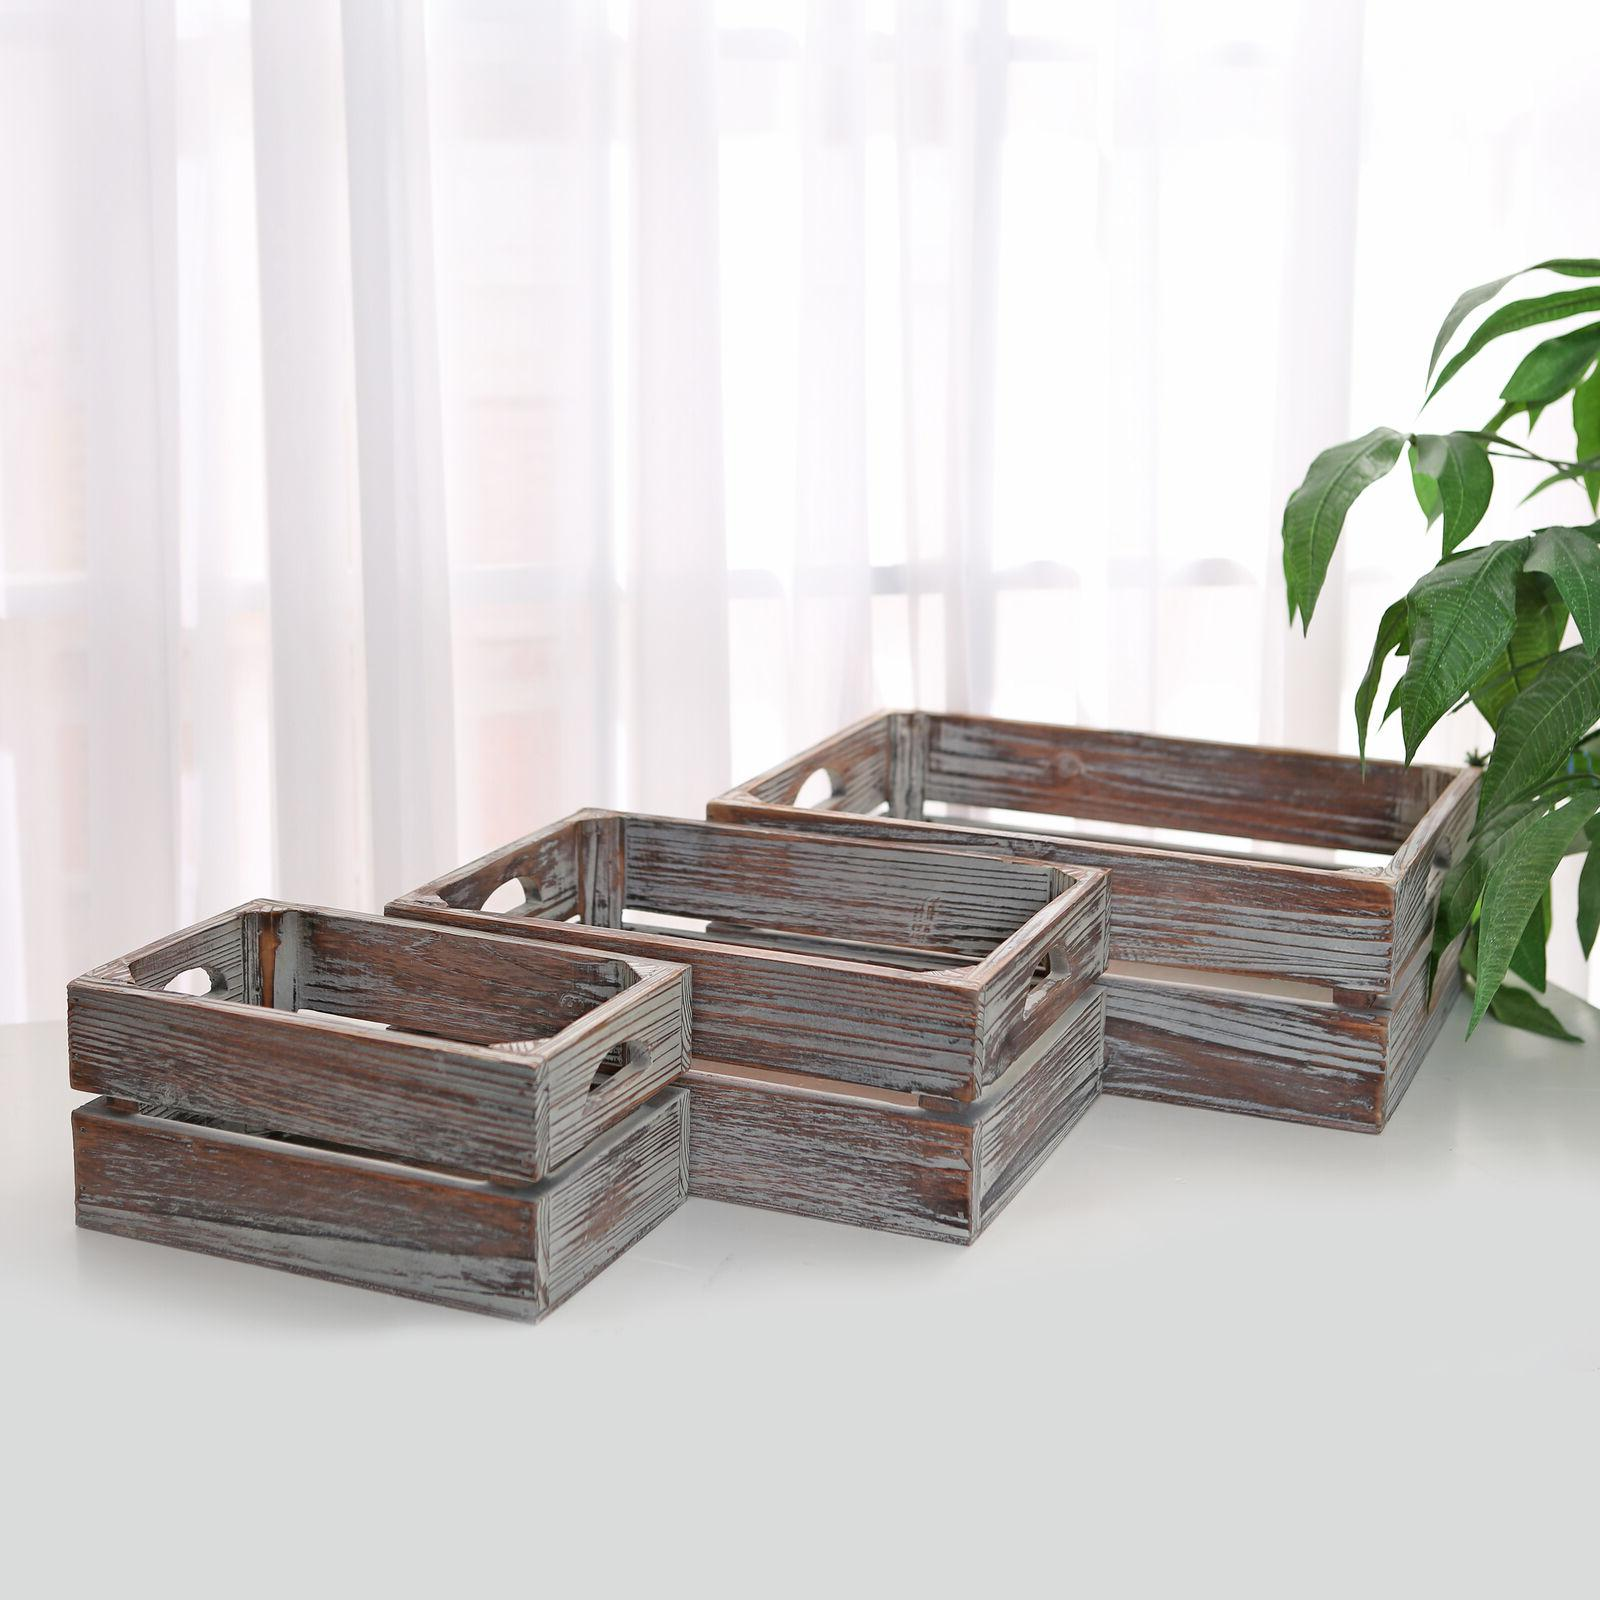 Set of 3 Finish Brown Wood Boxes Containers